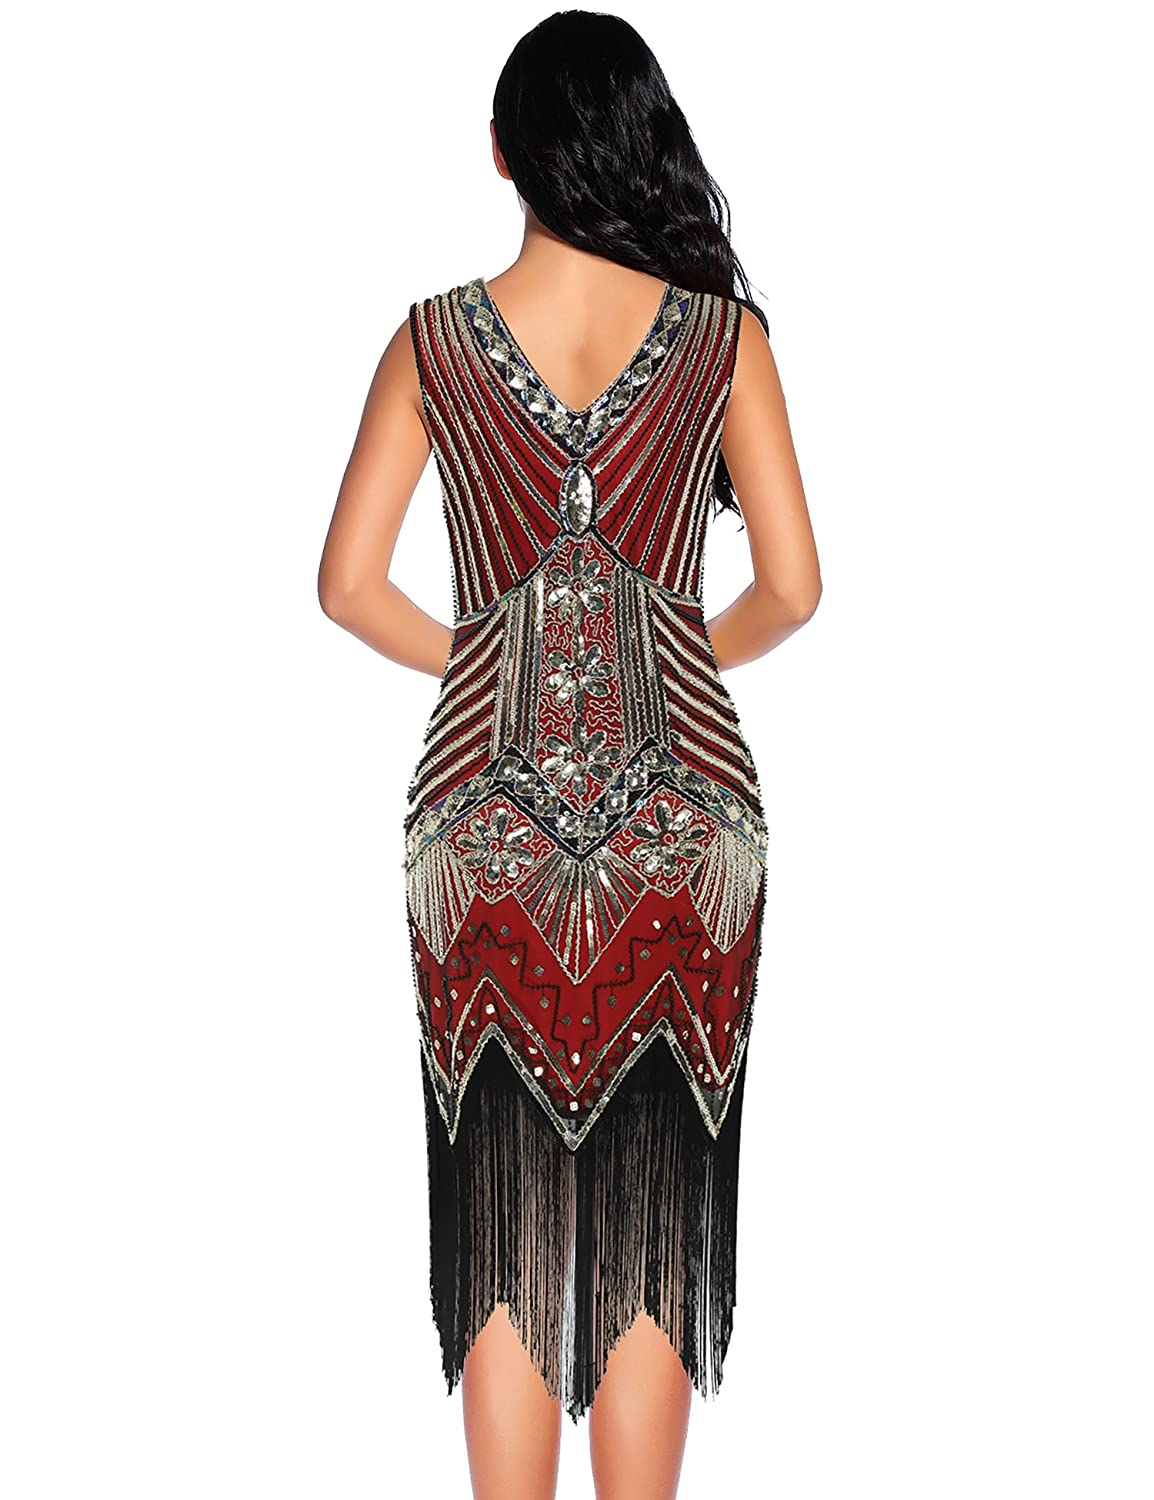 NeeMee Womens 1920s Gastby Sequin Embellished Fringed Flapper Dress